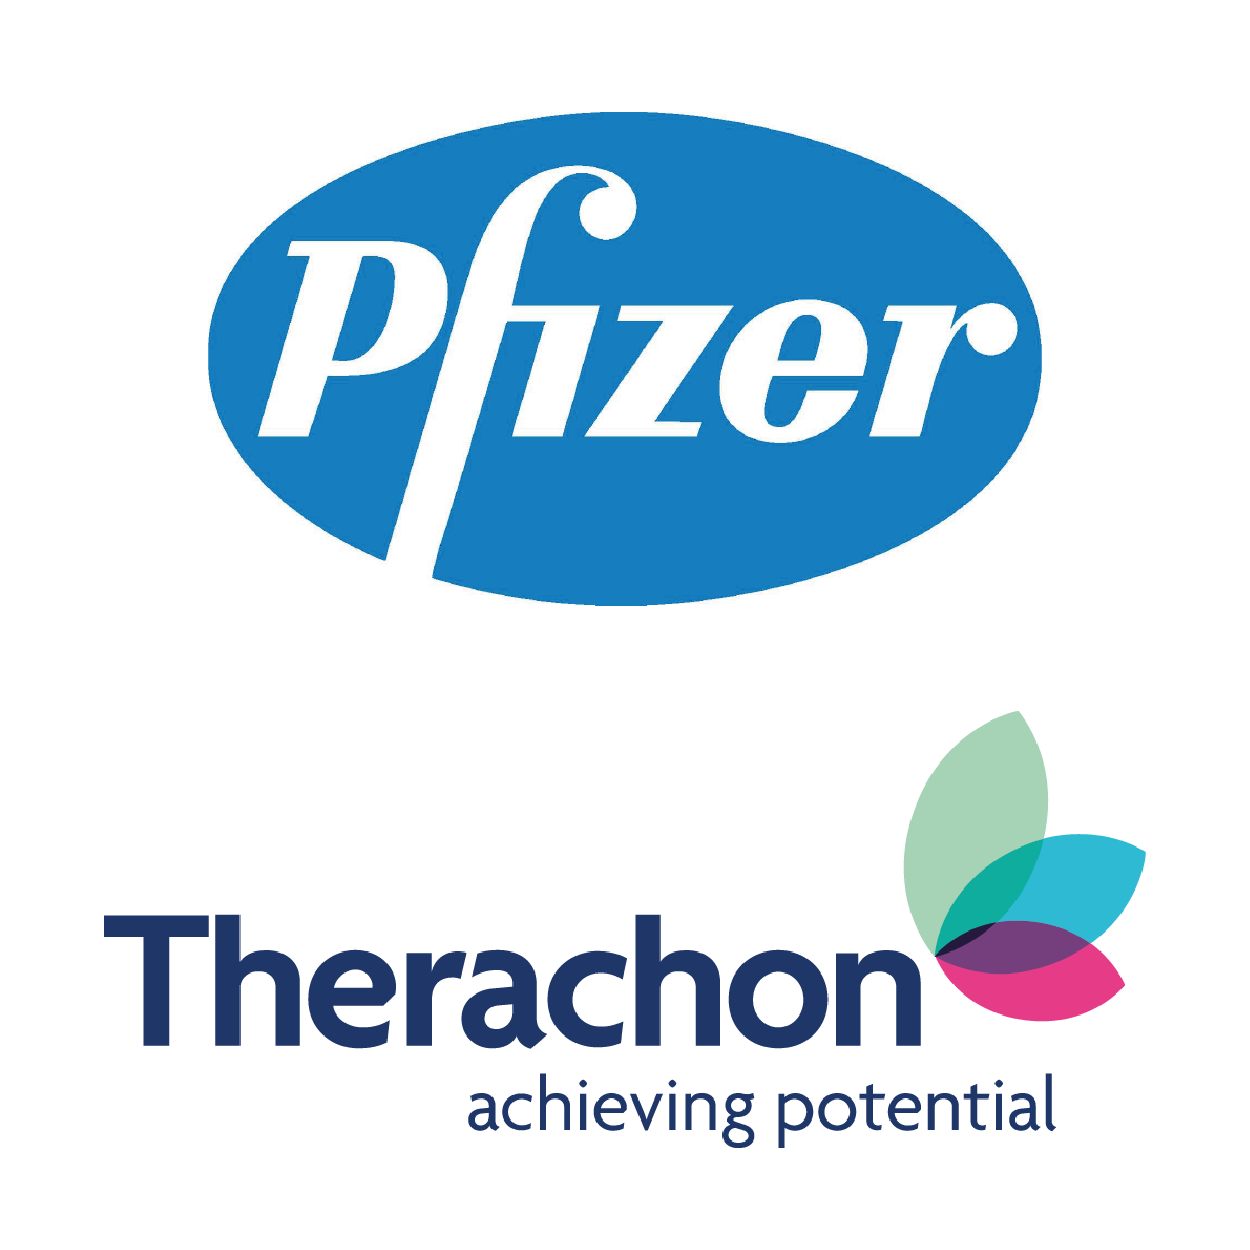 Pfizer and Therachon